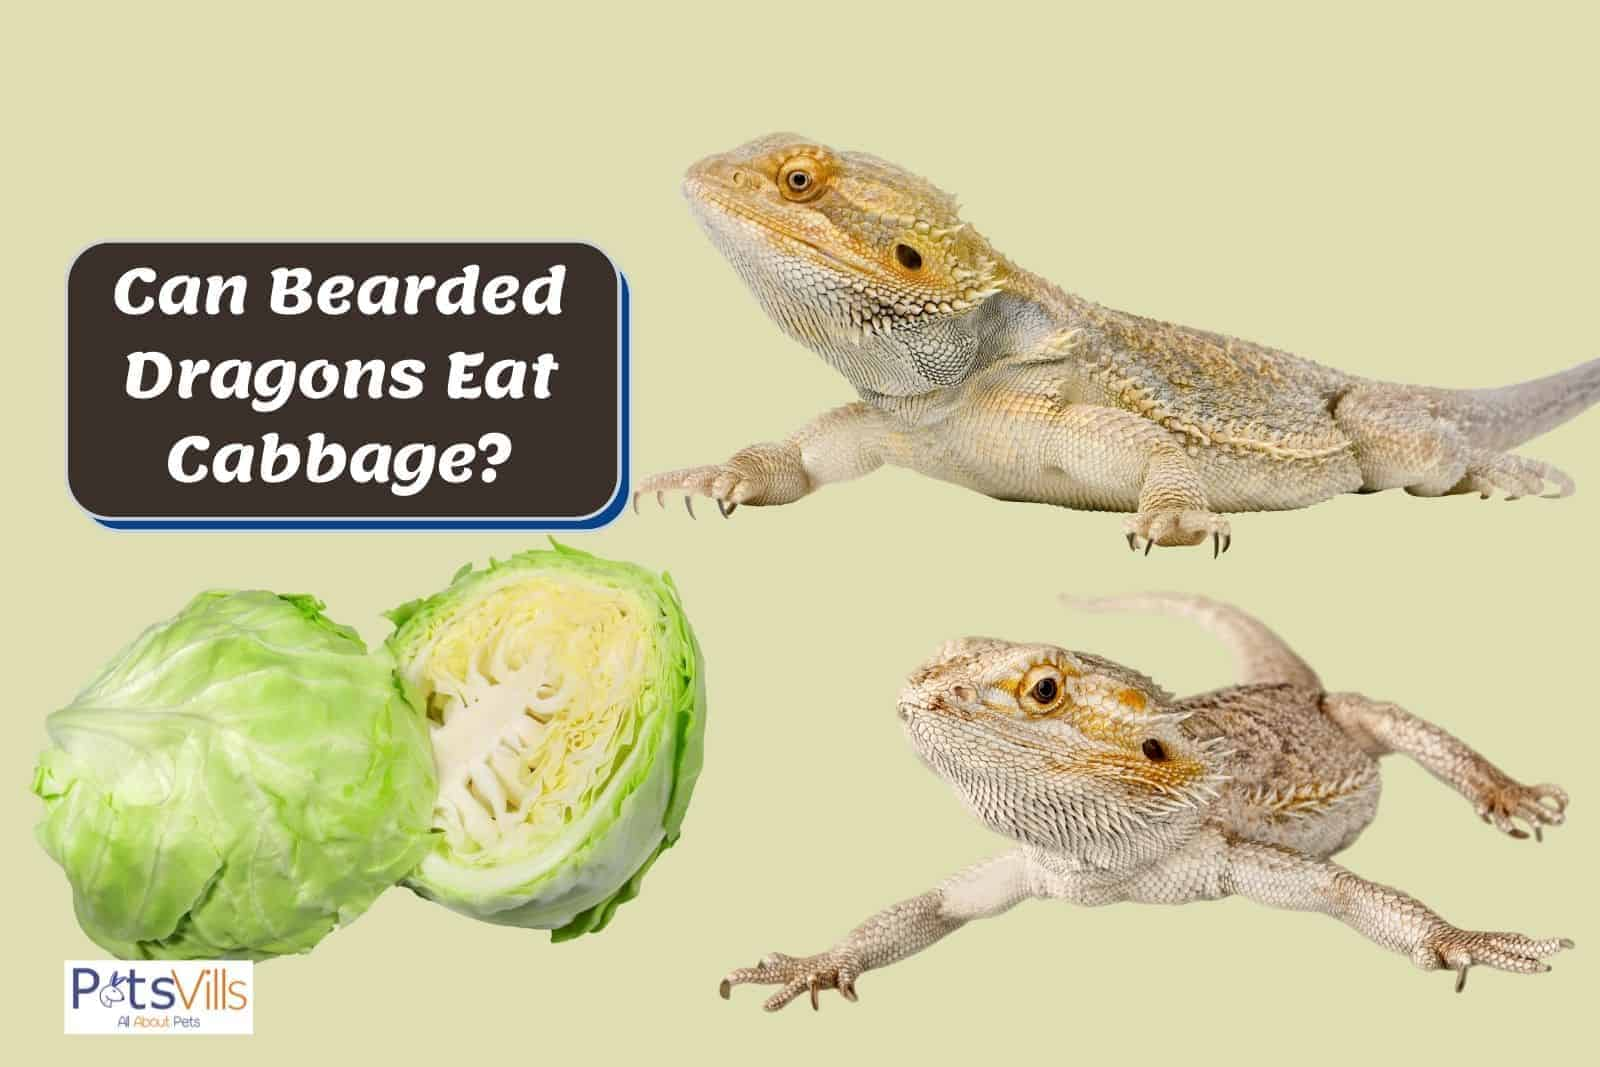 two bearded dragons and a chopped cabbage: can bearded dragons eat cabbage?